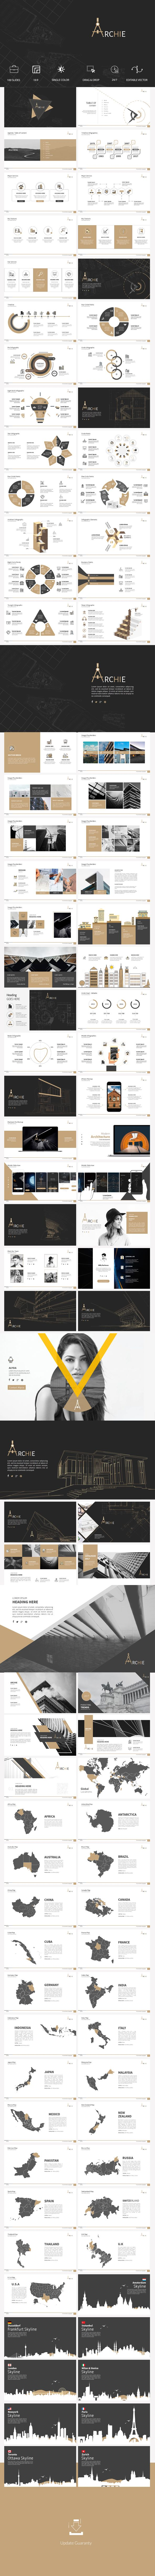 Archie - PowerPoint Presentation Template